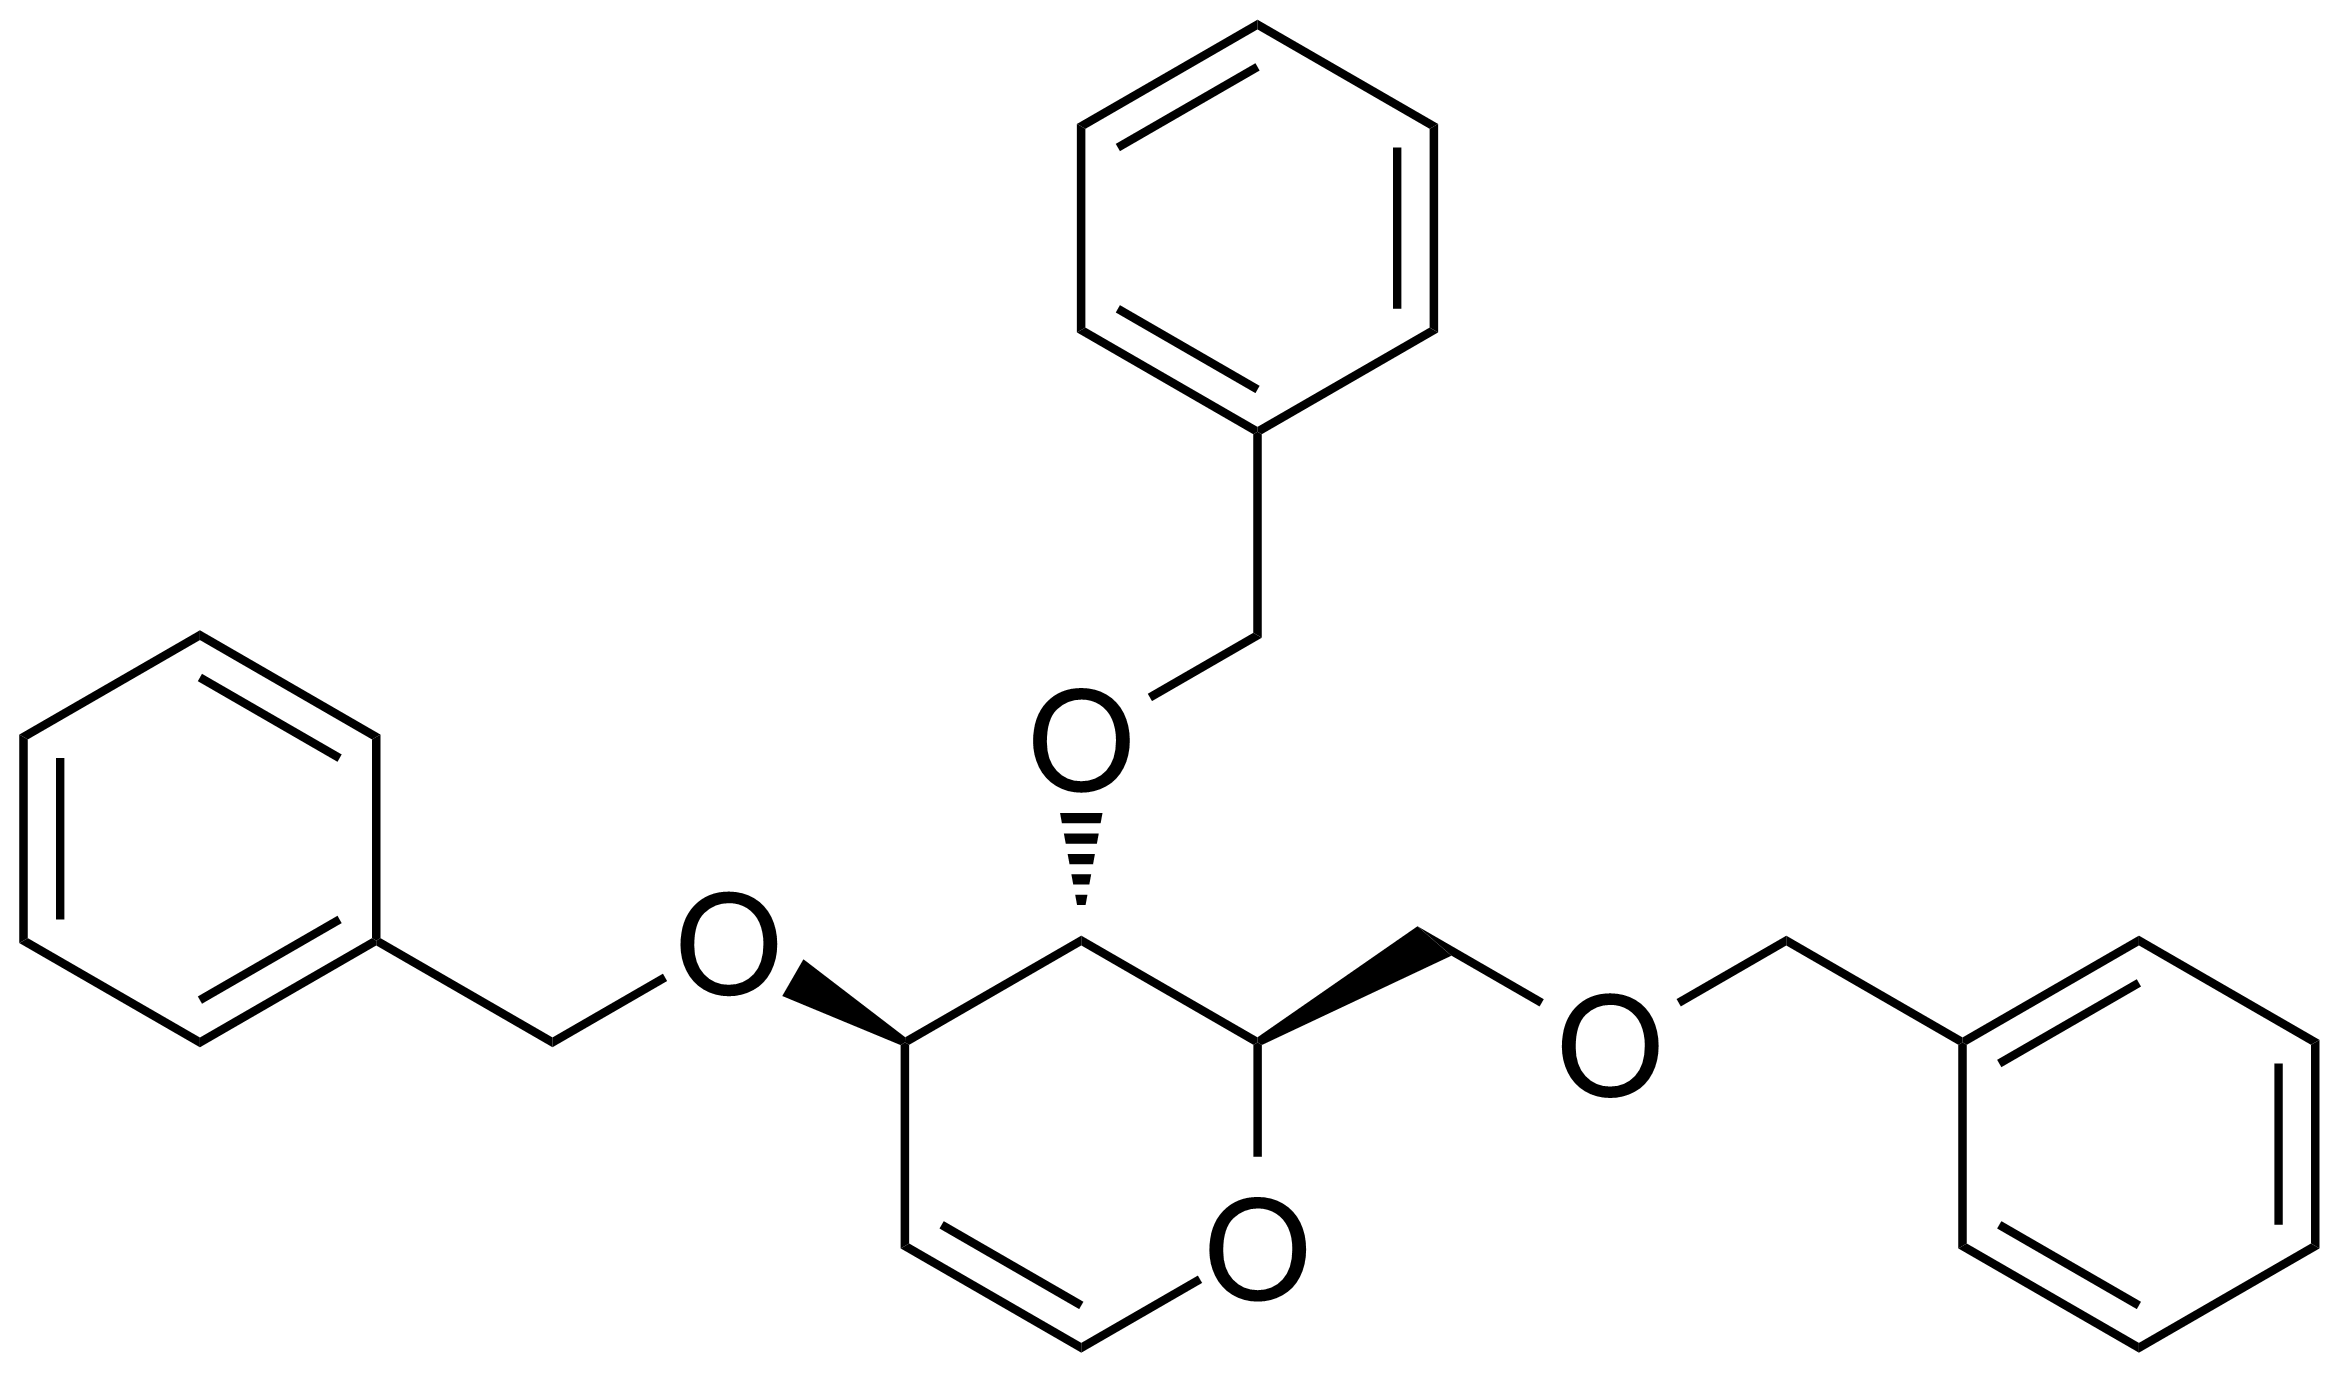 Structure of 1,5-Anhydro-3,4,6-tri-O-benzyl-2-deoxy-D-arabinohex-1-enitol